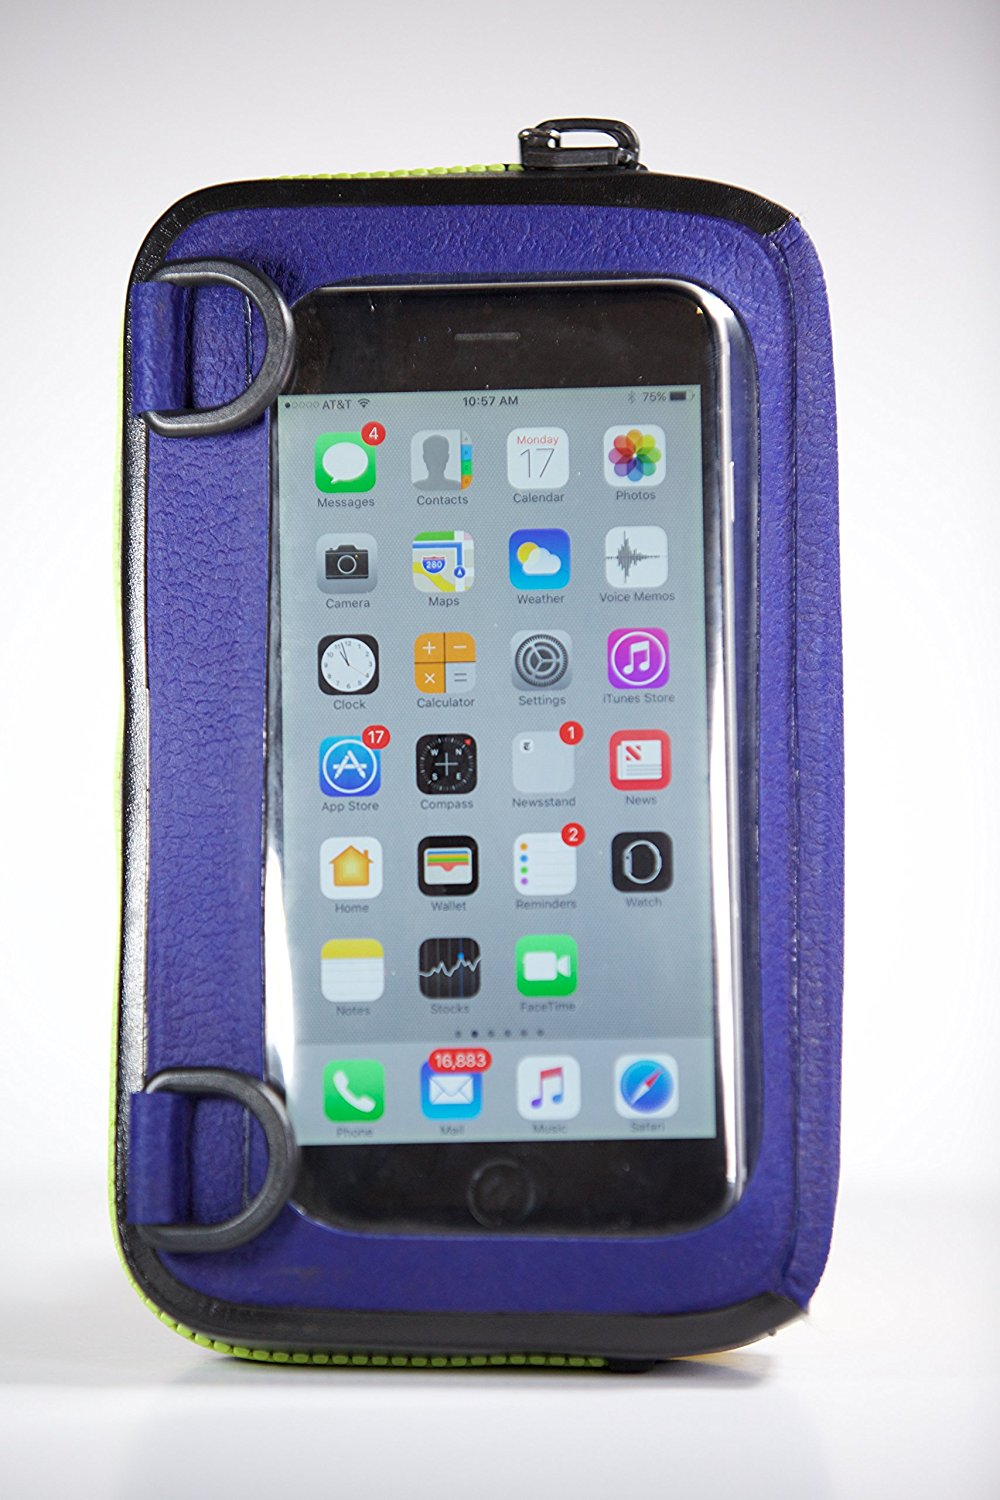 100% Waterproof iPhone Case | Dry Bags Waterproof | Universal Waterproof Cell Phone Case | Waterproof Dry Bag - Beach to Dinner. It Floats! Use phone while in bag; talk, text, photos, videos + more.